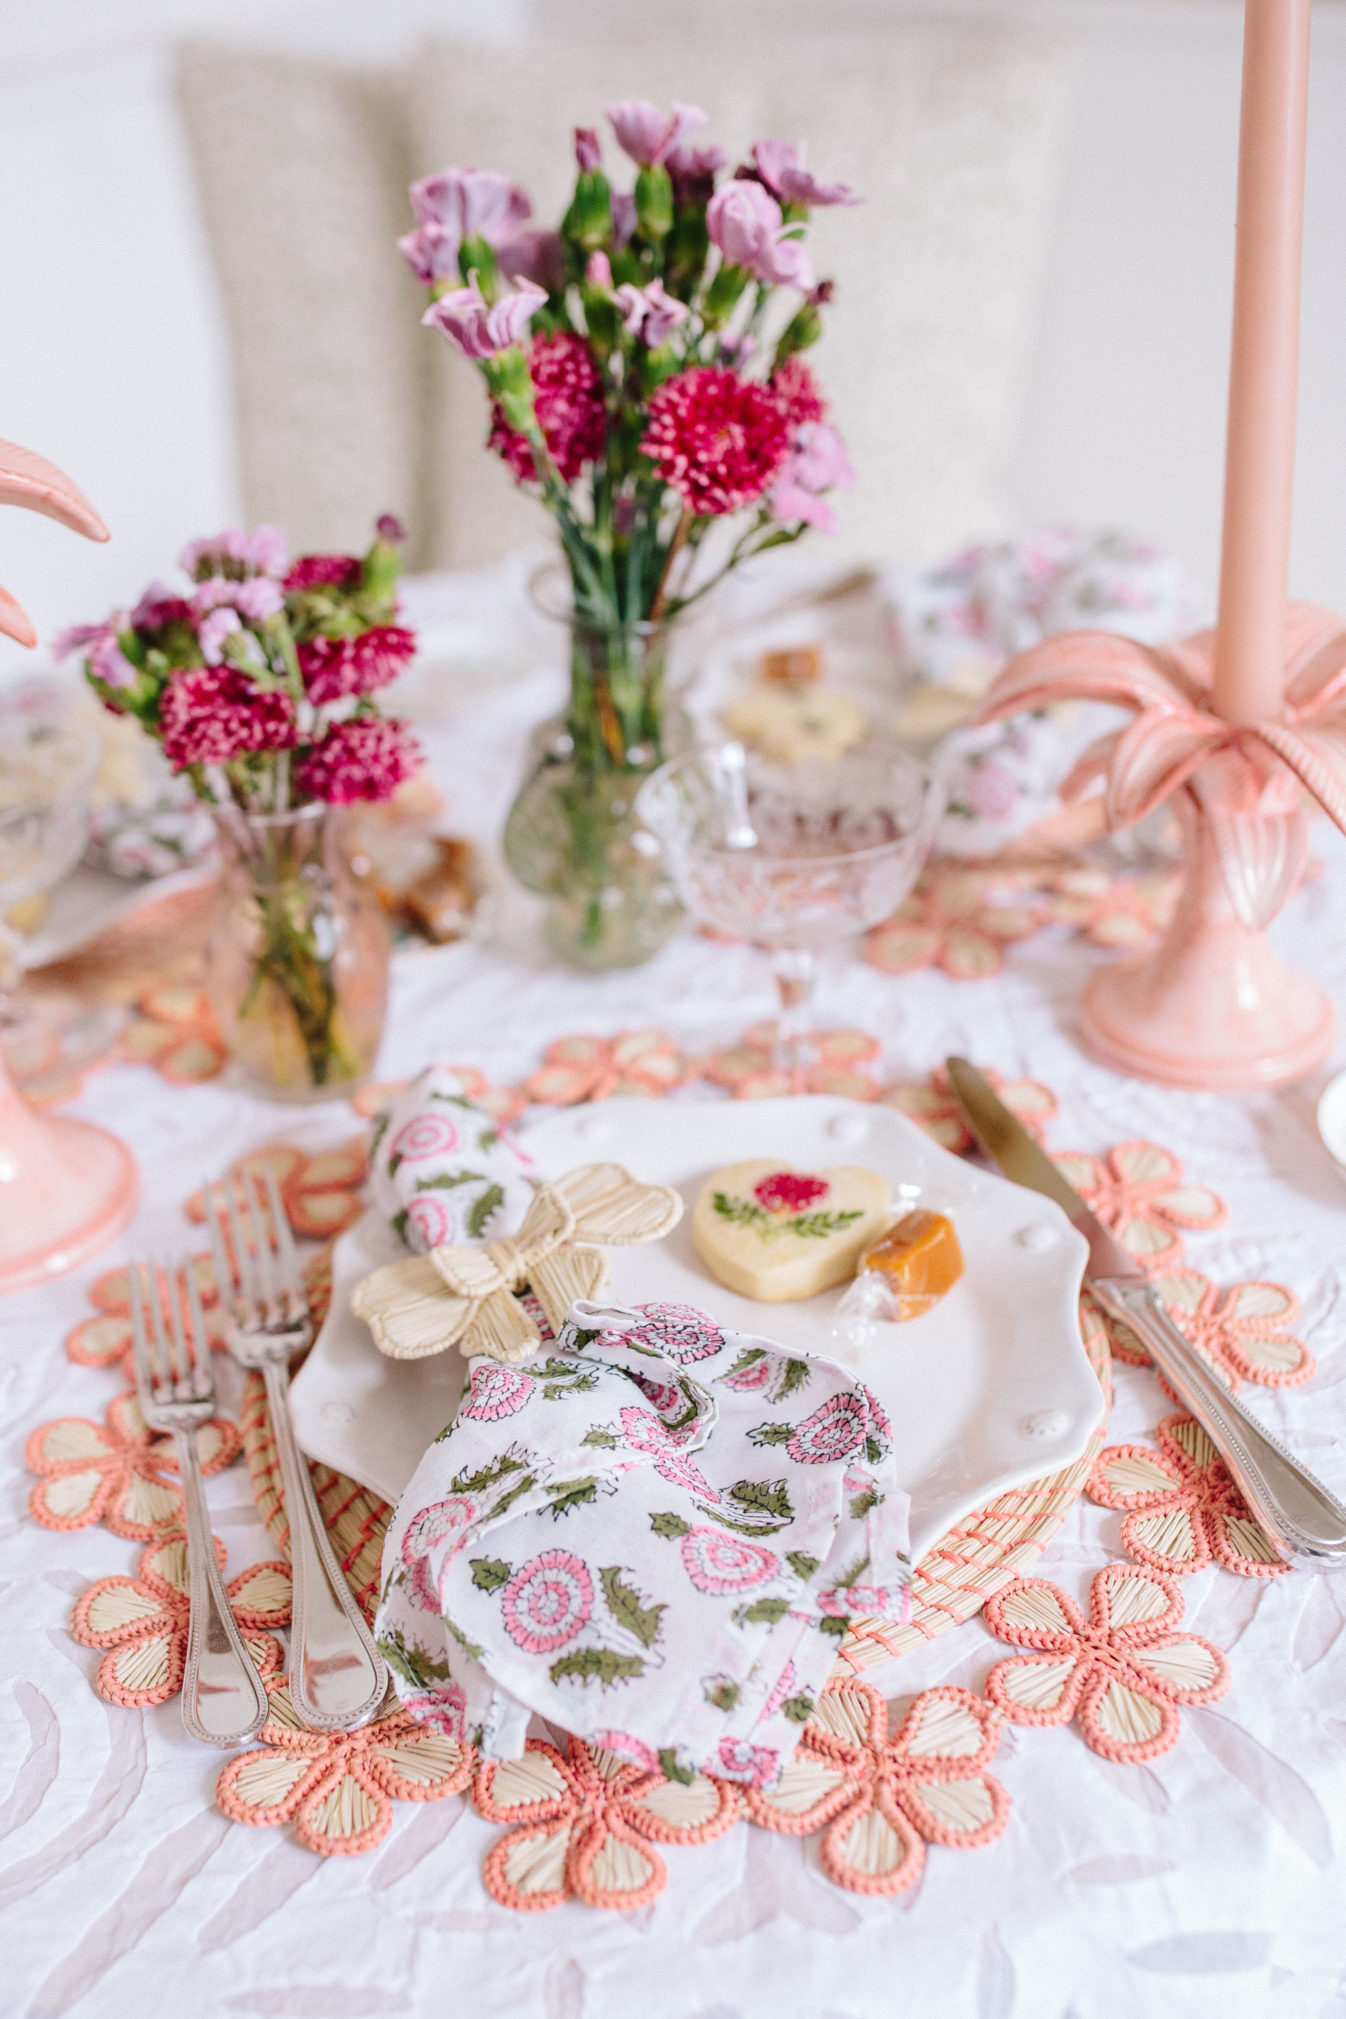 How to set a beautiful spring table | Rhyme & Reason